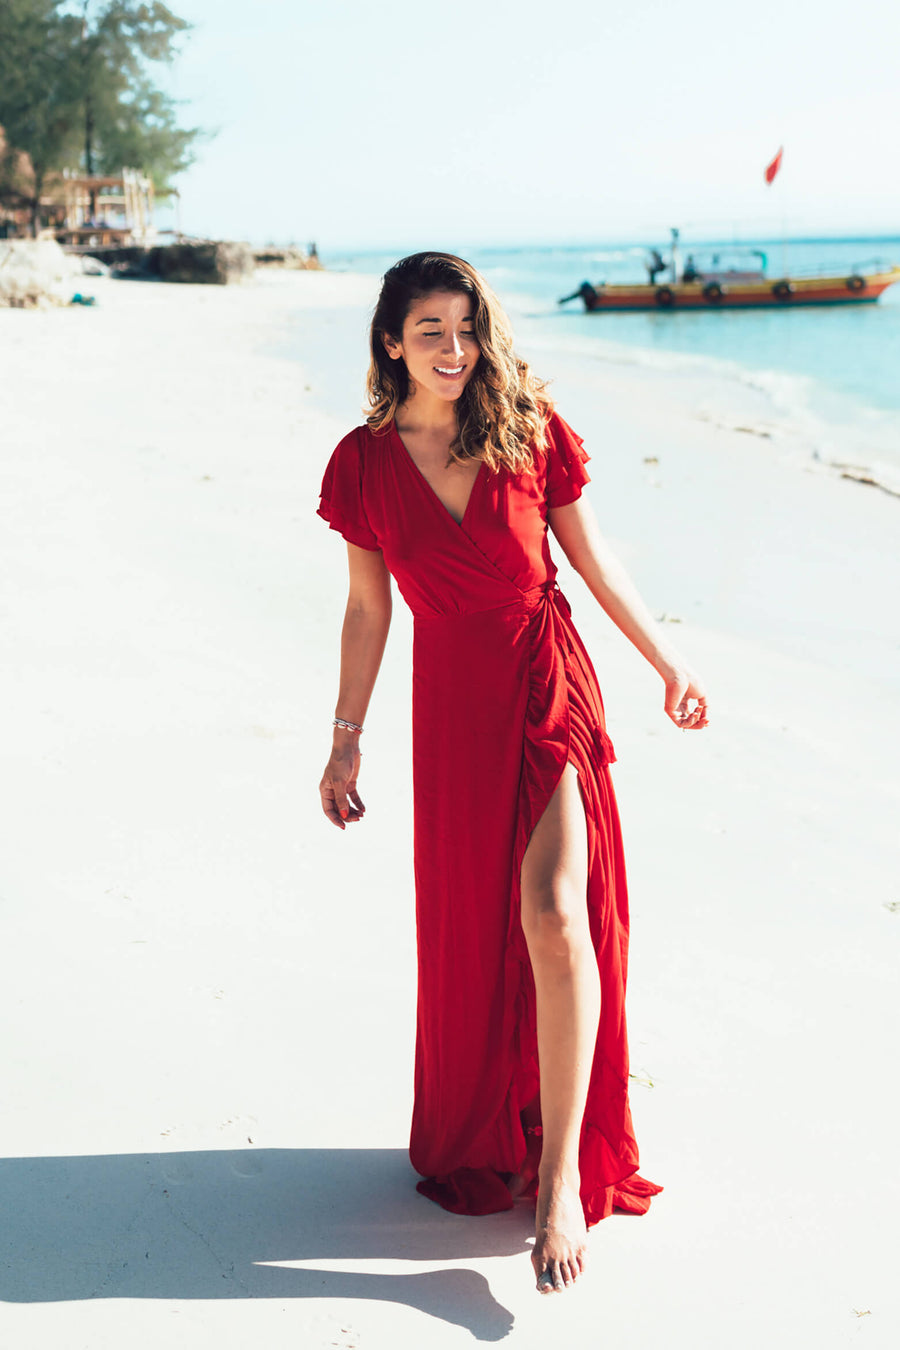 PARAISO Wrap Dress - red ecovero